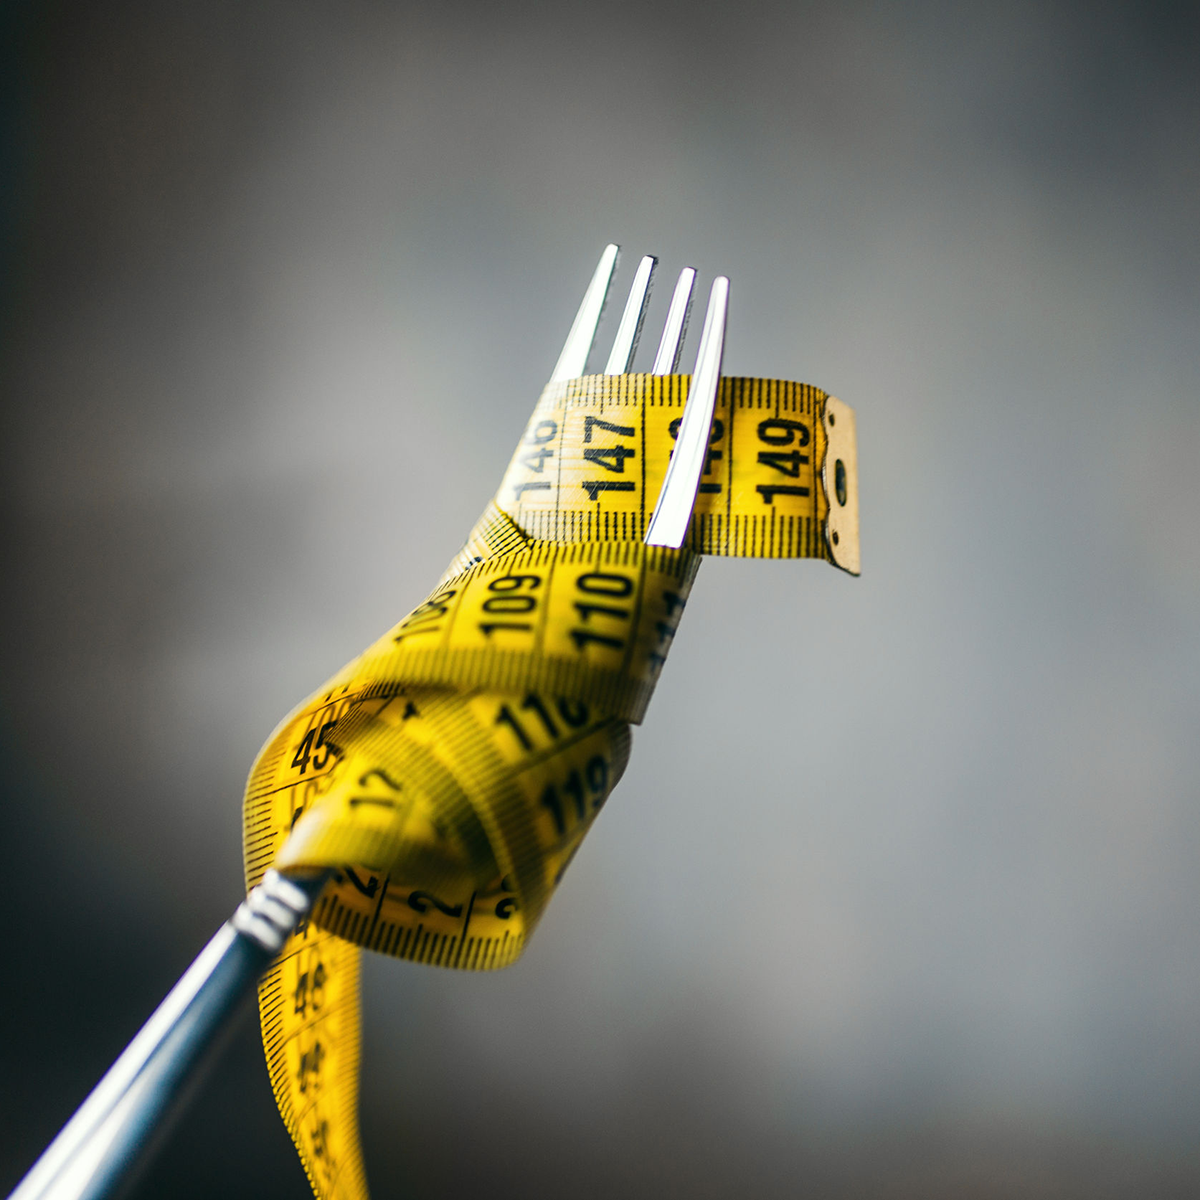 Picture of a tape measure wrapped around a fork